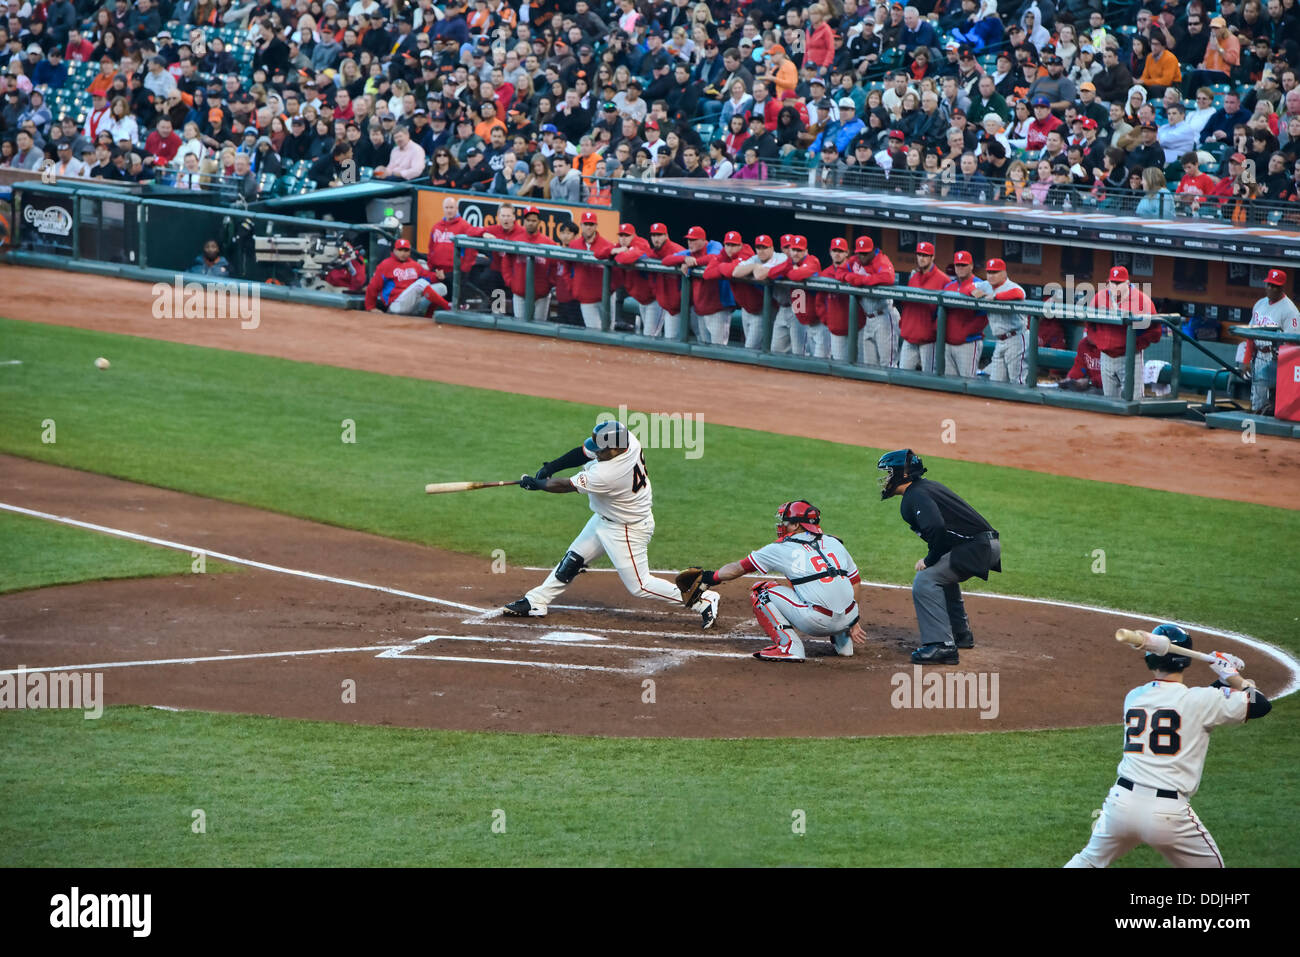 Pablo Sandoval gets a hit for the San Francisco Giants at AT&T Park, San Francisco, California - Stock Image